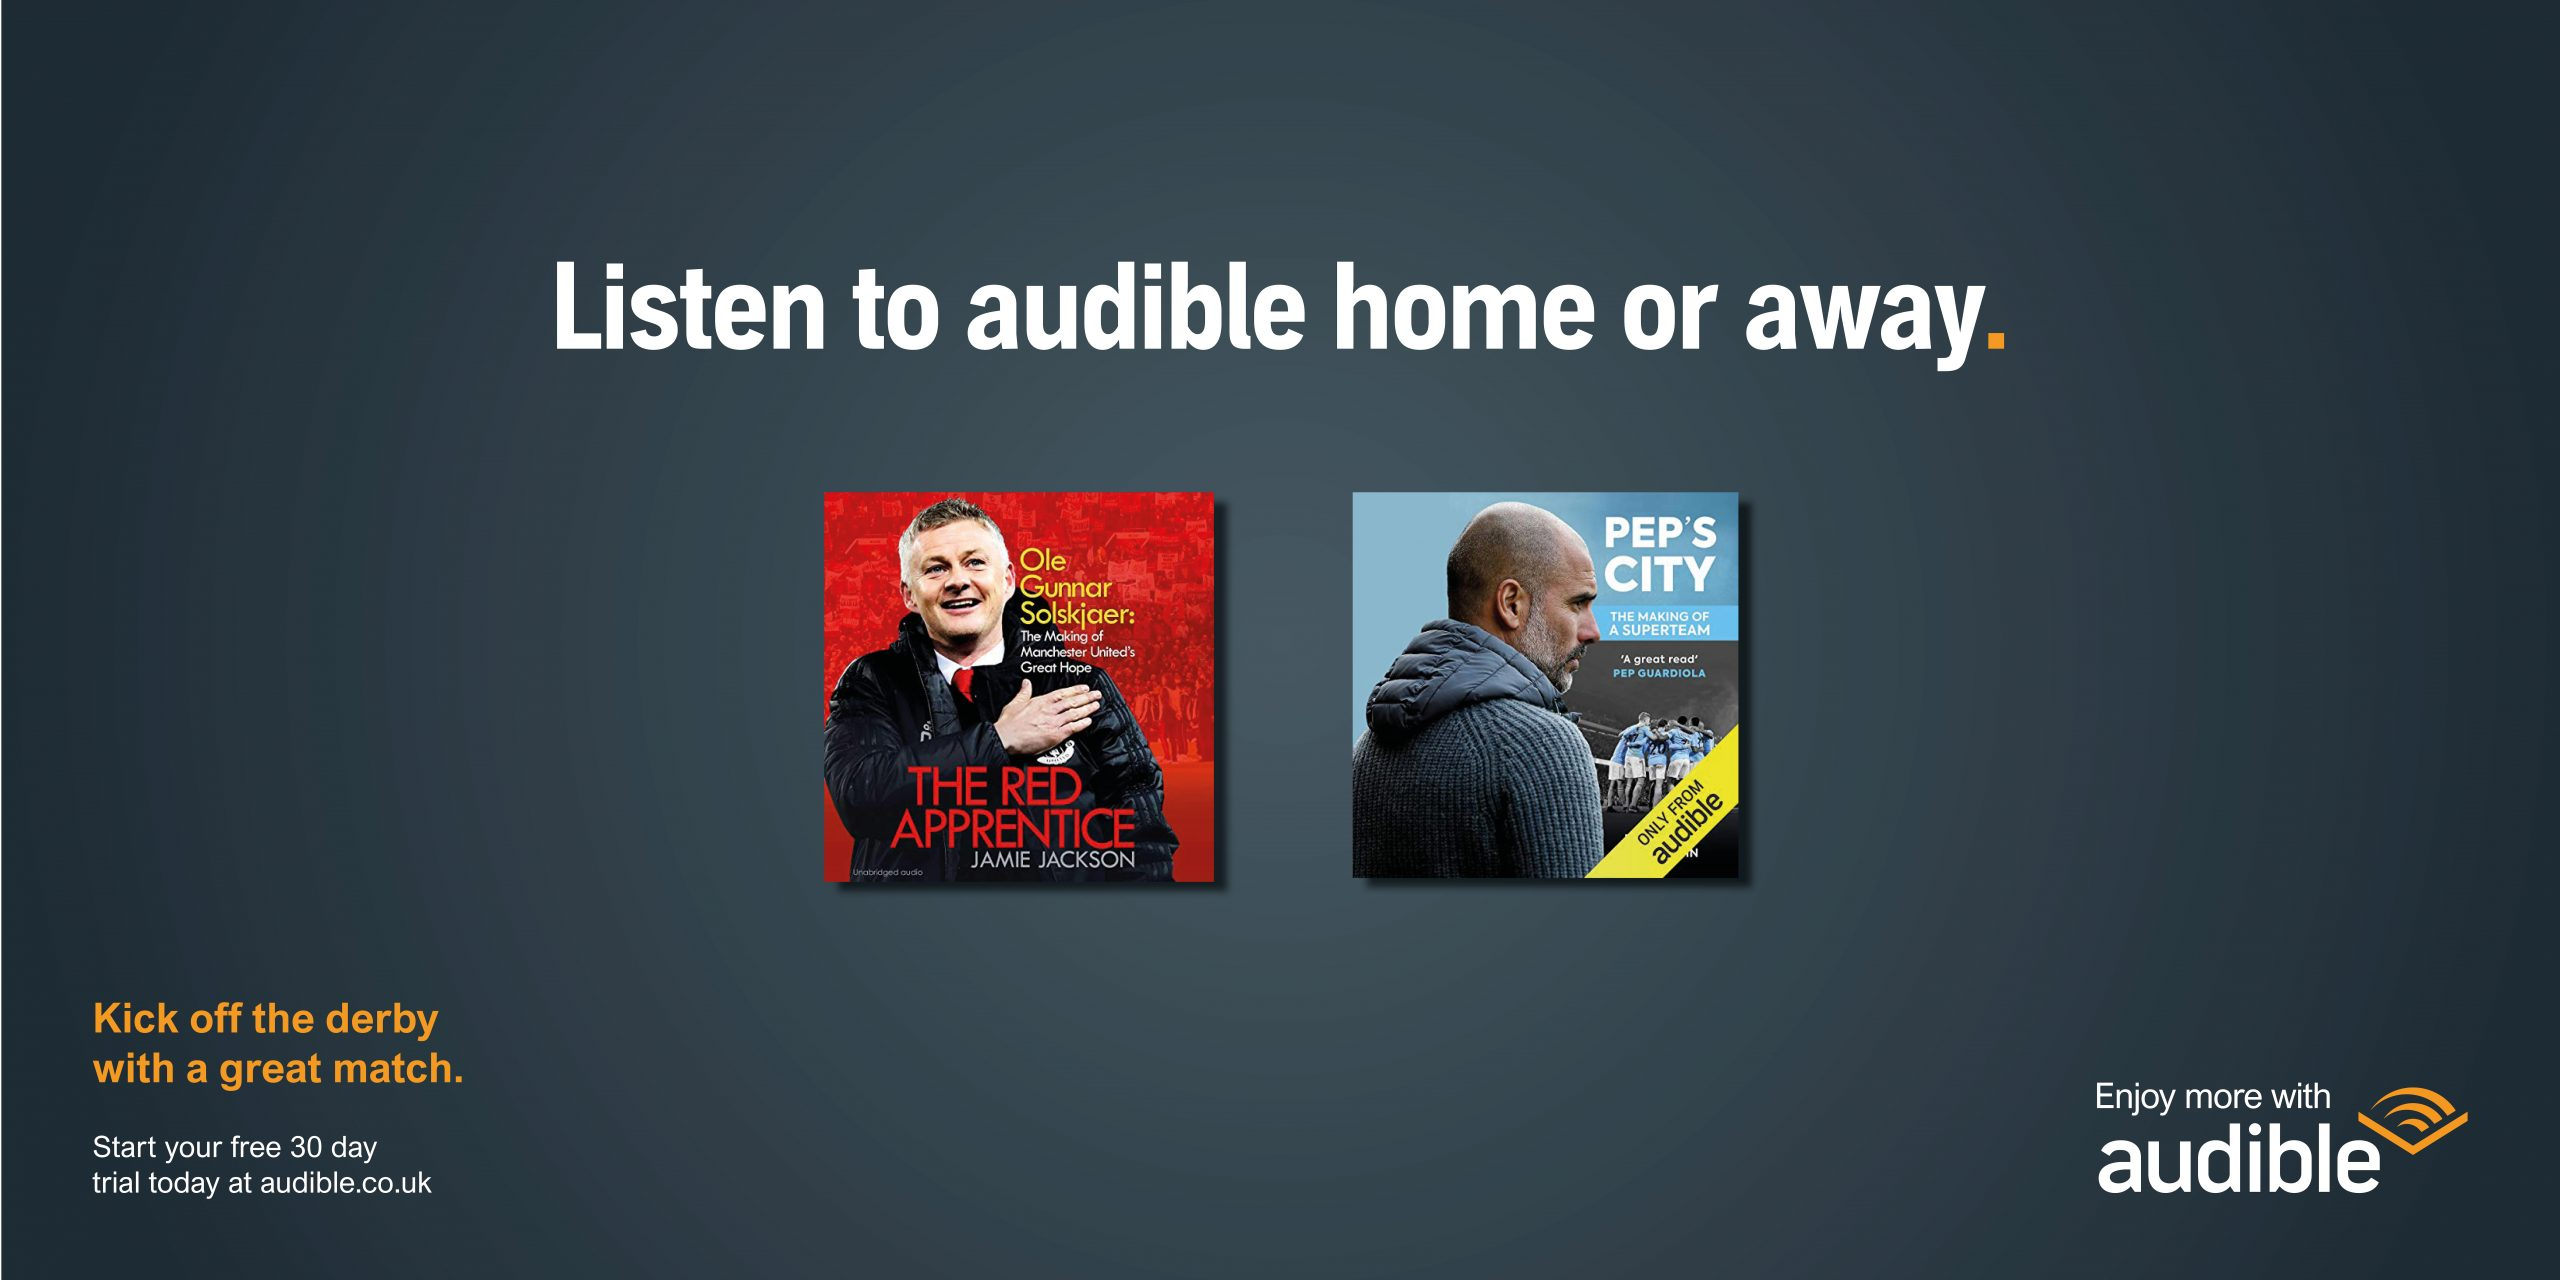 Enjoy more with audible Image